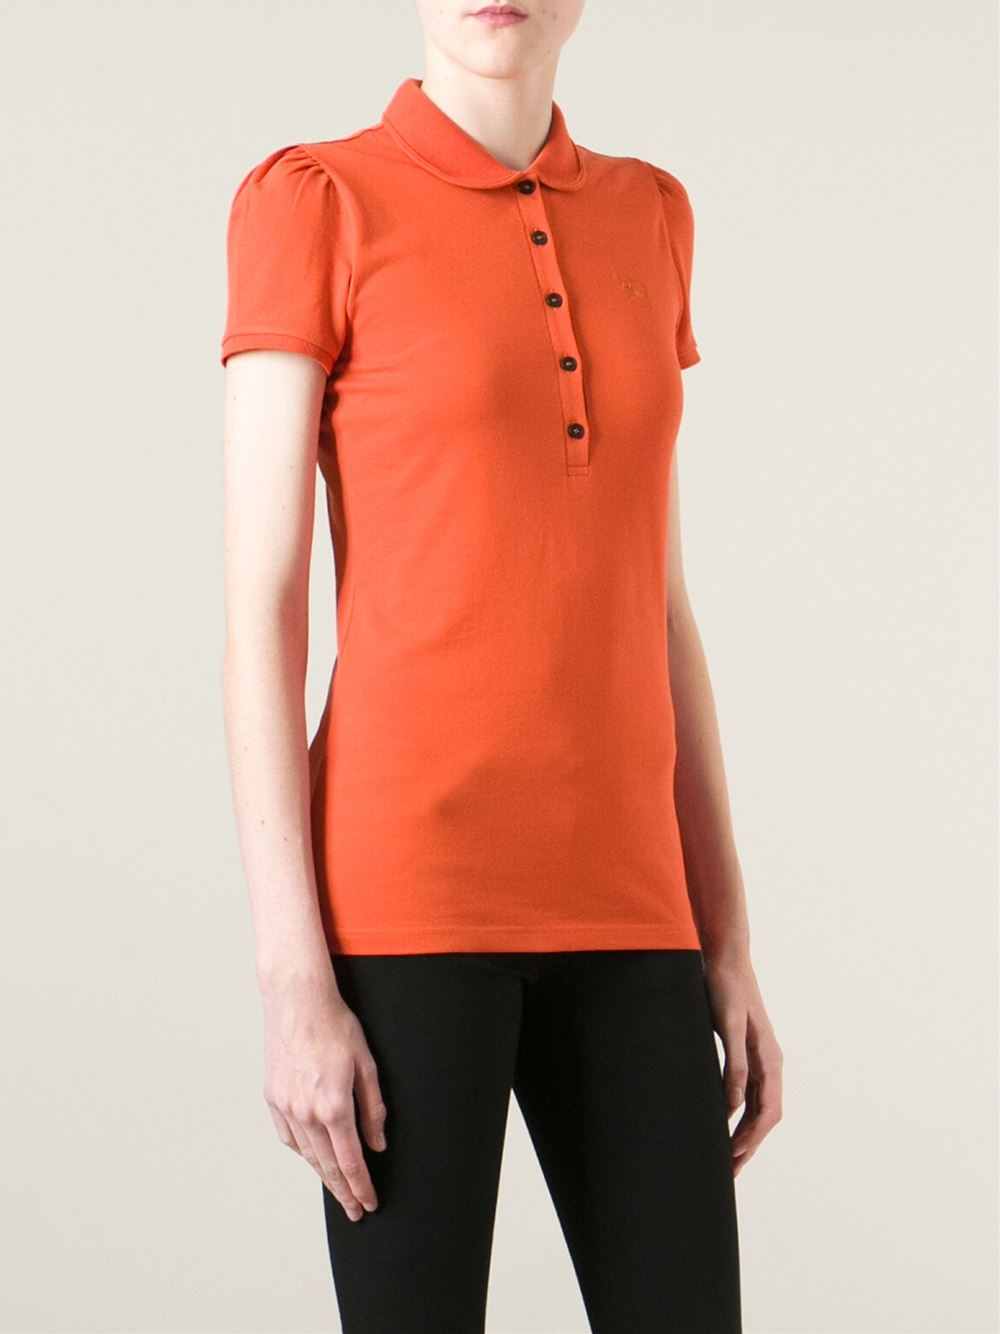 Burberry Brit Classic Polo Shirt In Red Yellow Orange